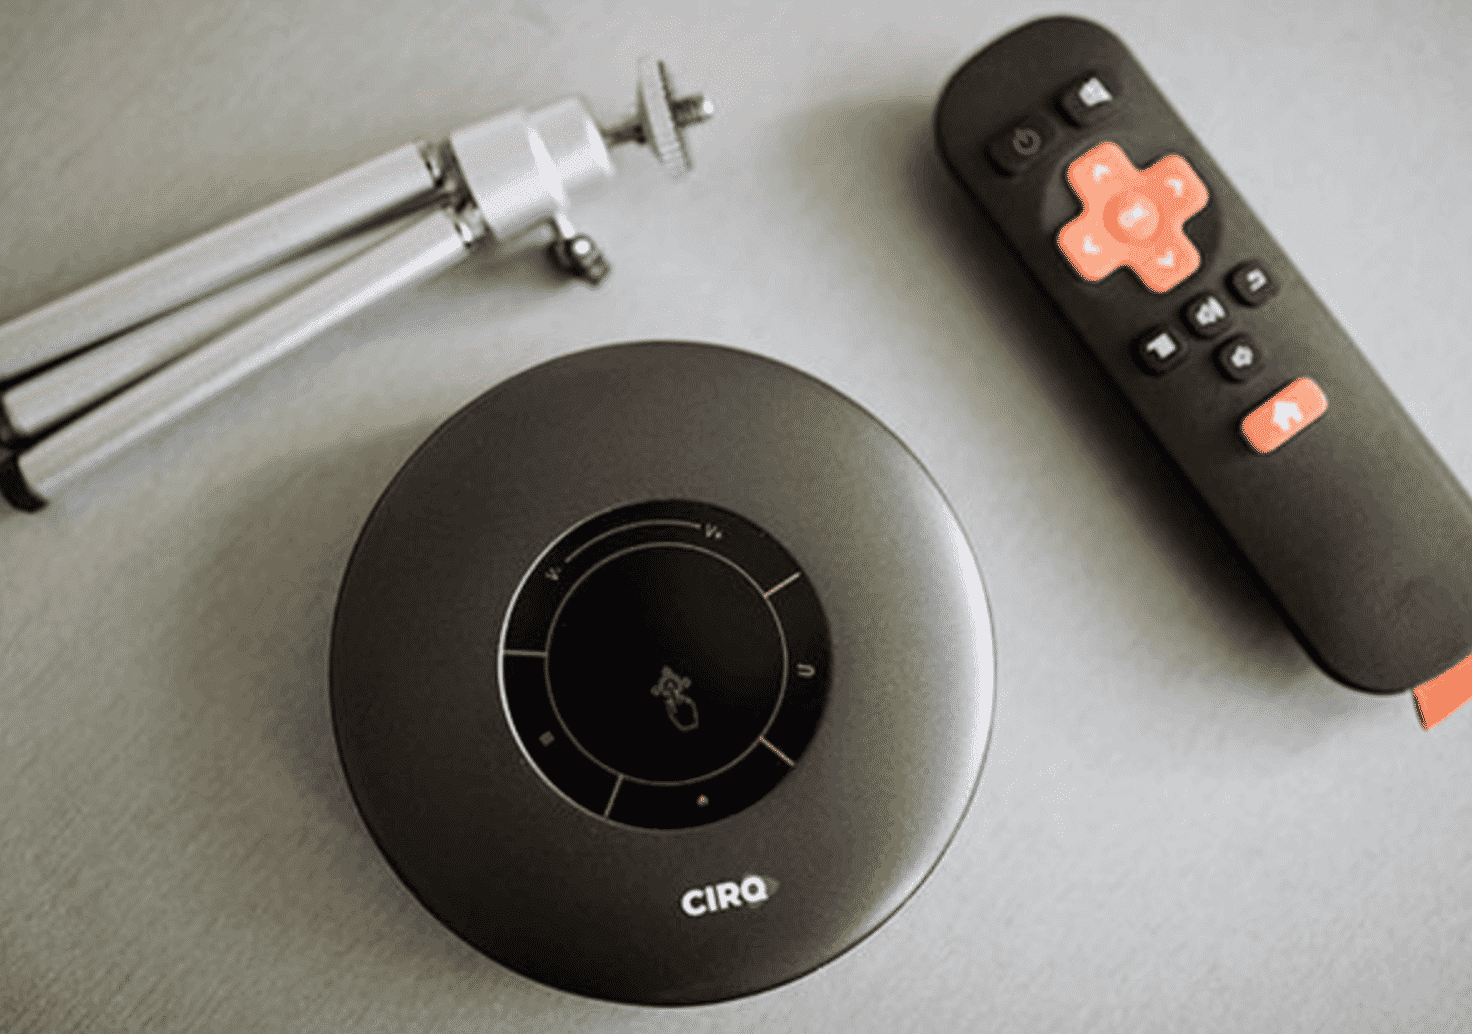 CIRQ: World's Smallest 1080p Projector